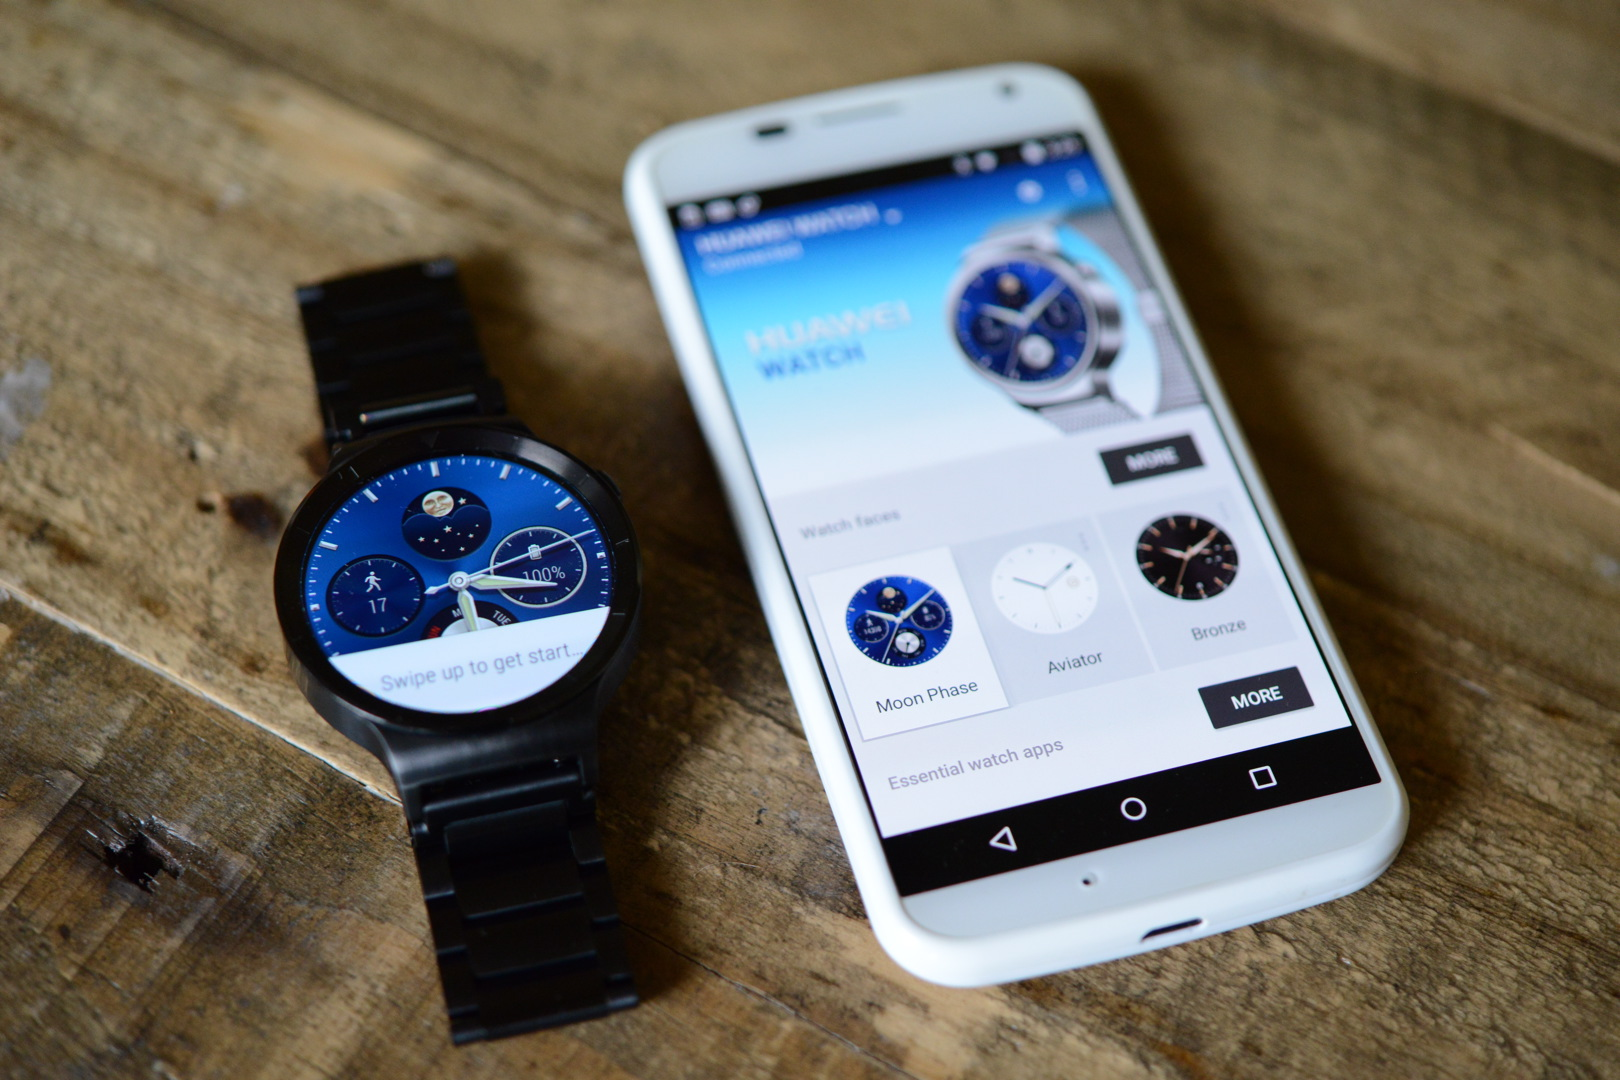 Huawei Watch Review: A Premium Android Wear Timepiece